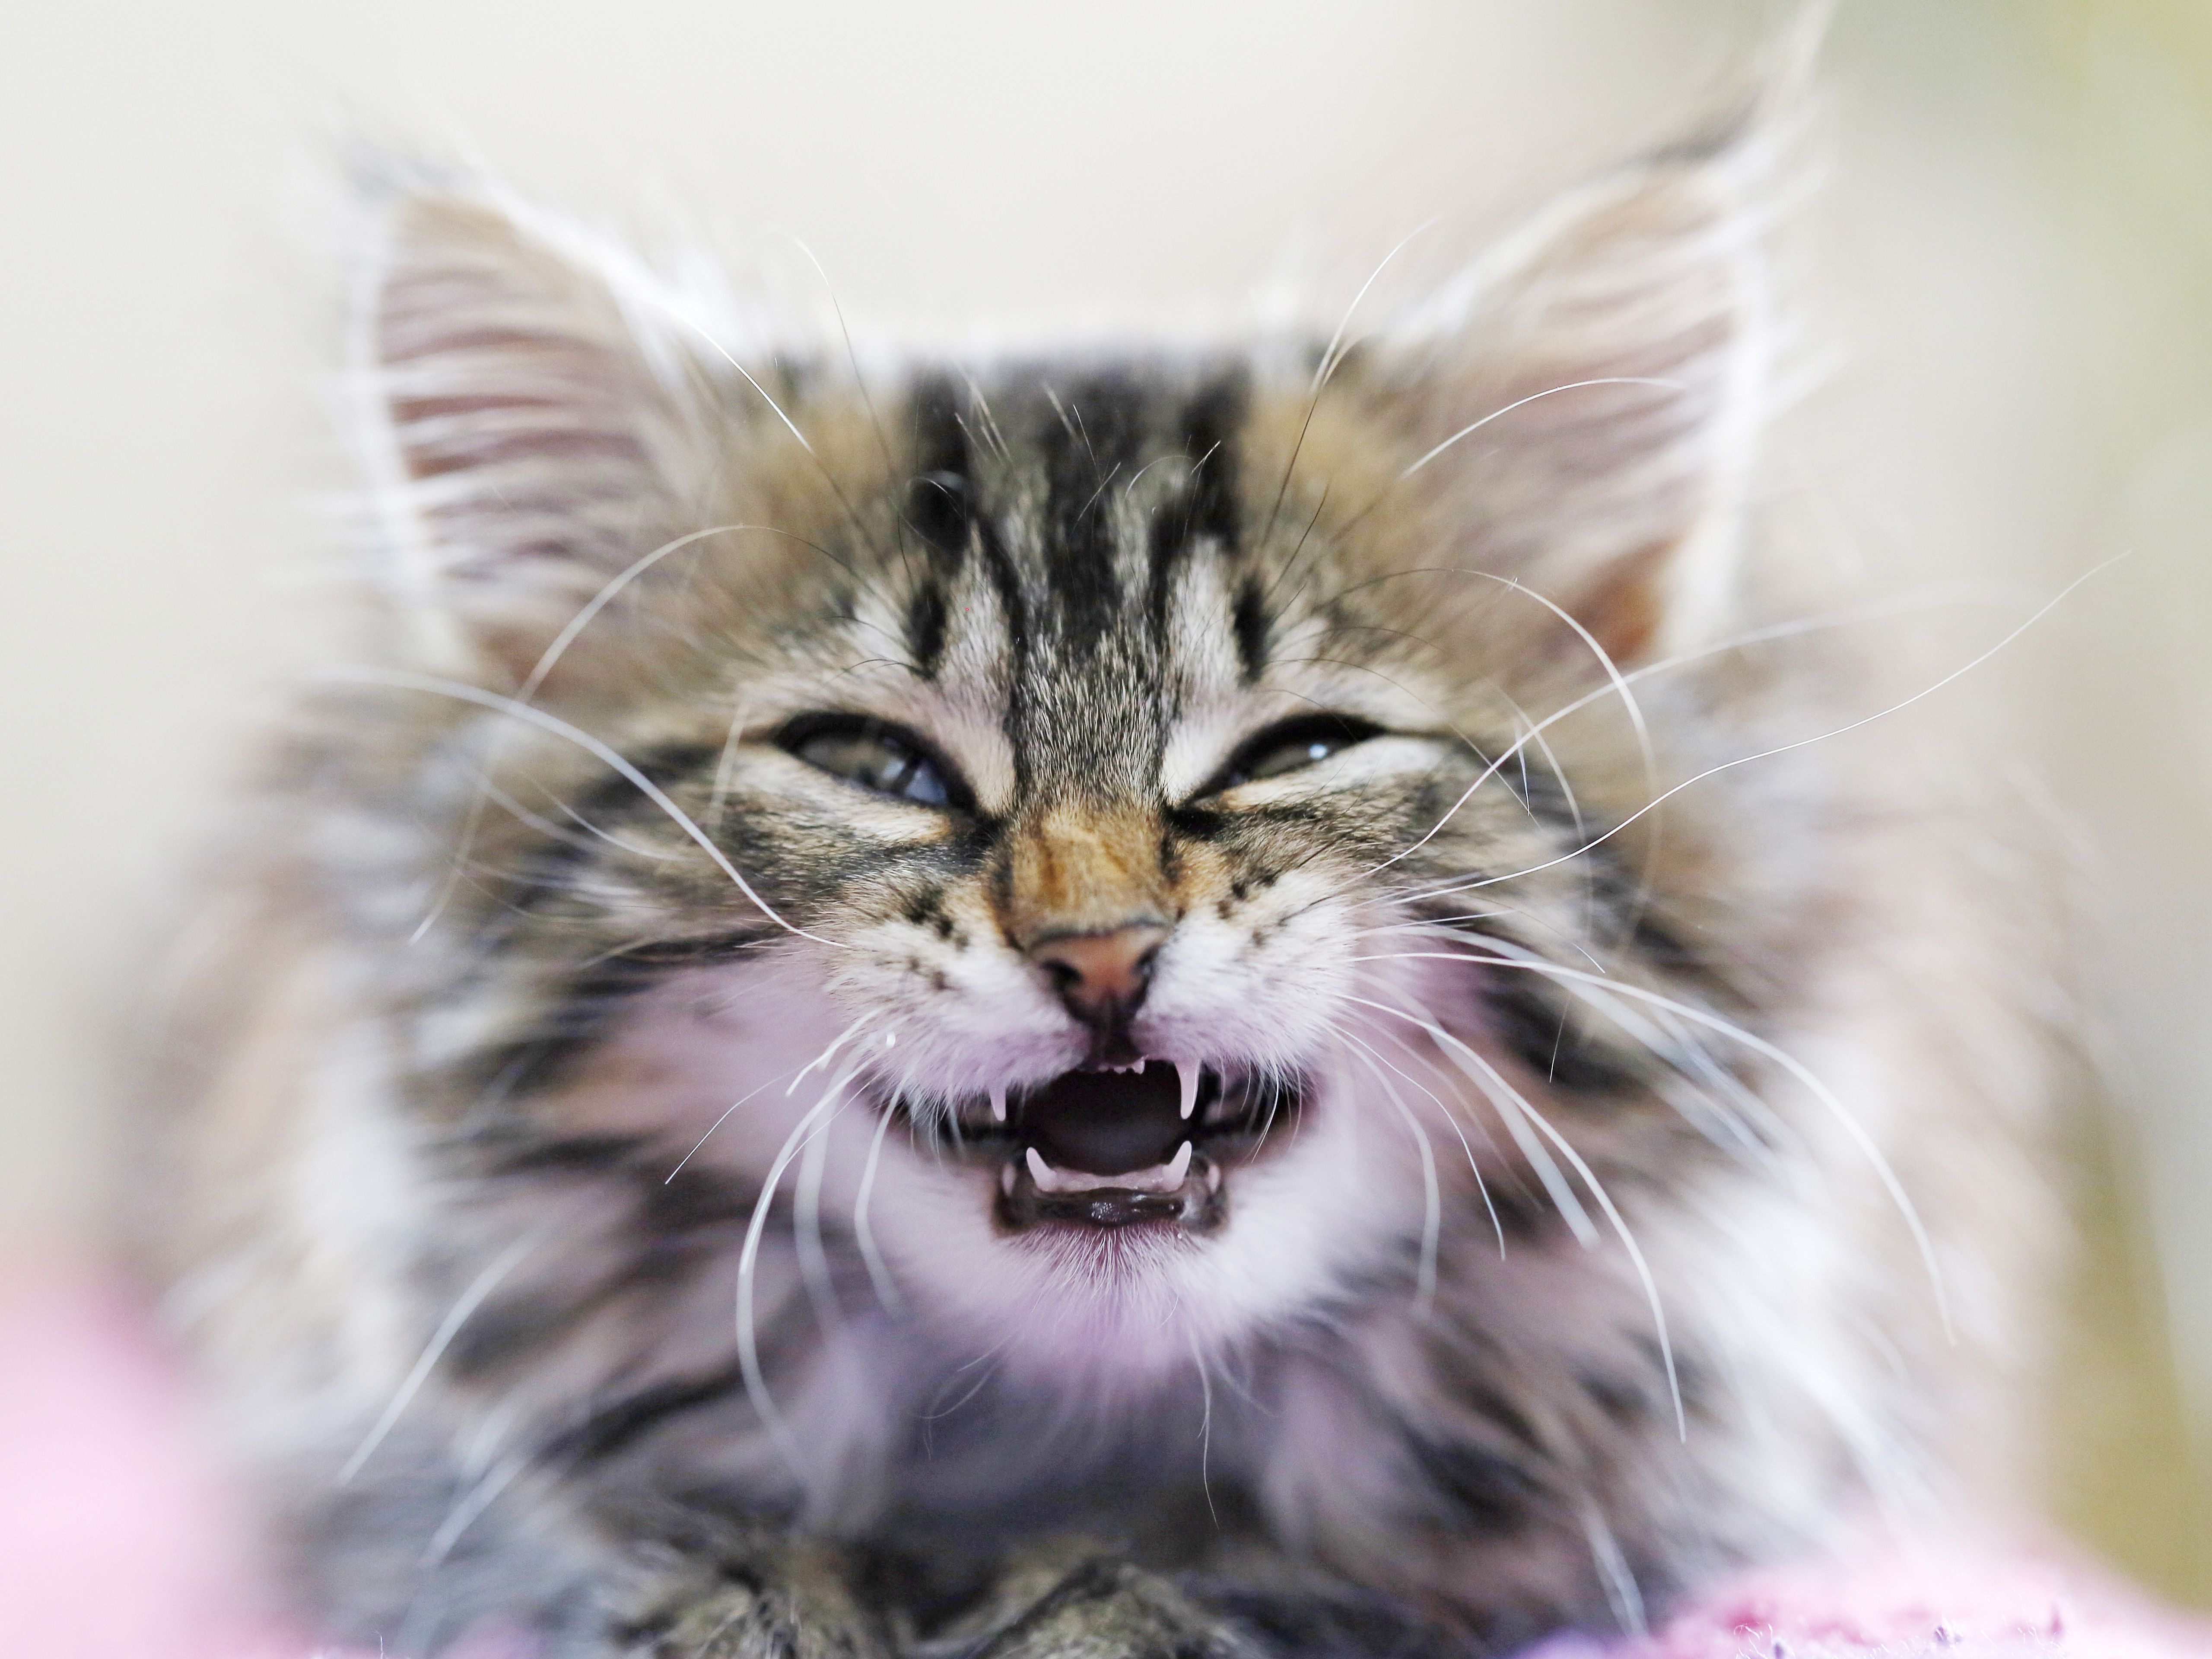 seine et marne close up of a female kitten under 10 weeks trying to show its teeth deciduous teeth norwegian cat breed 5c4c16e0c9e77c f3436